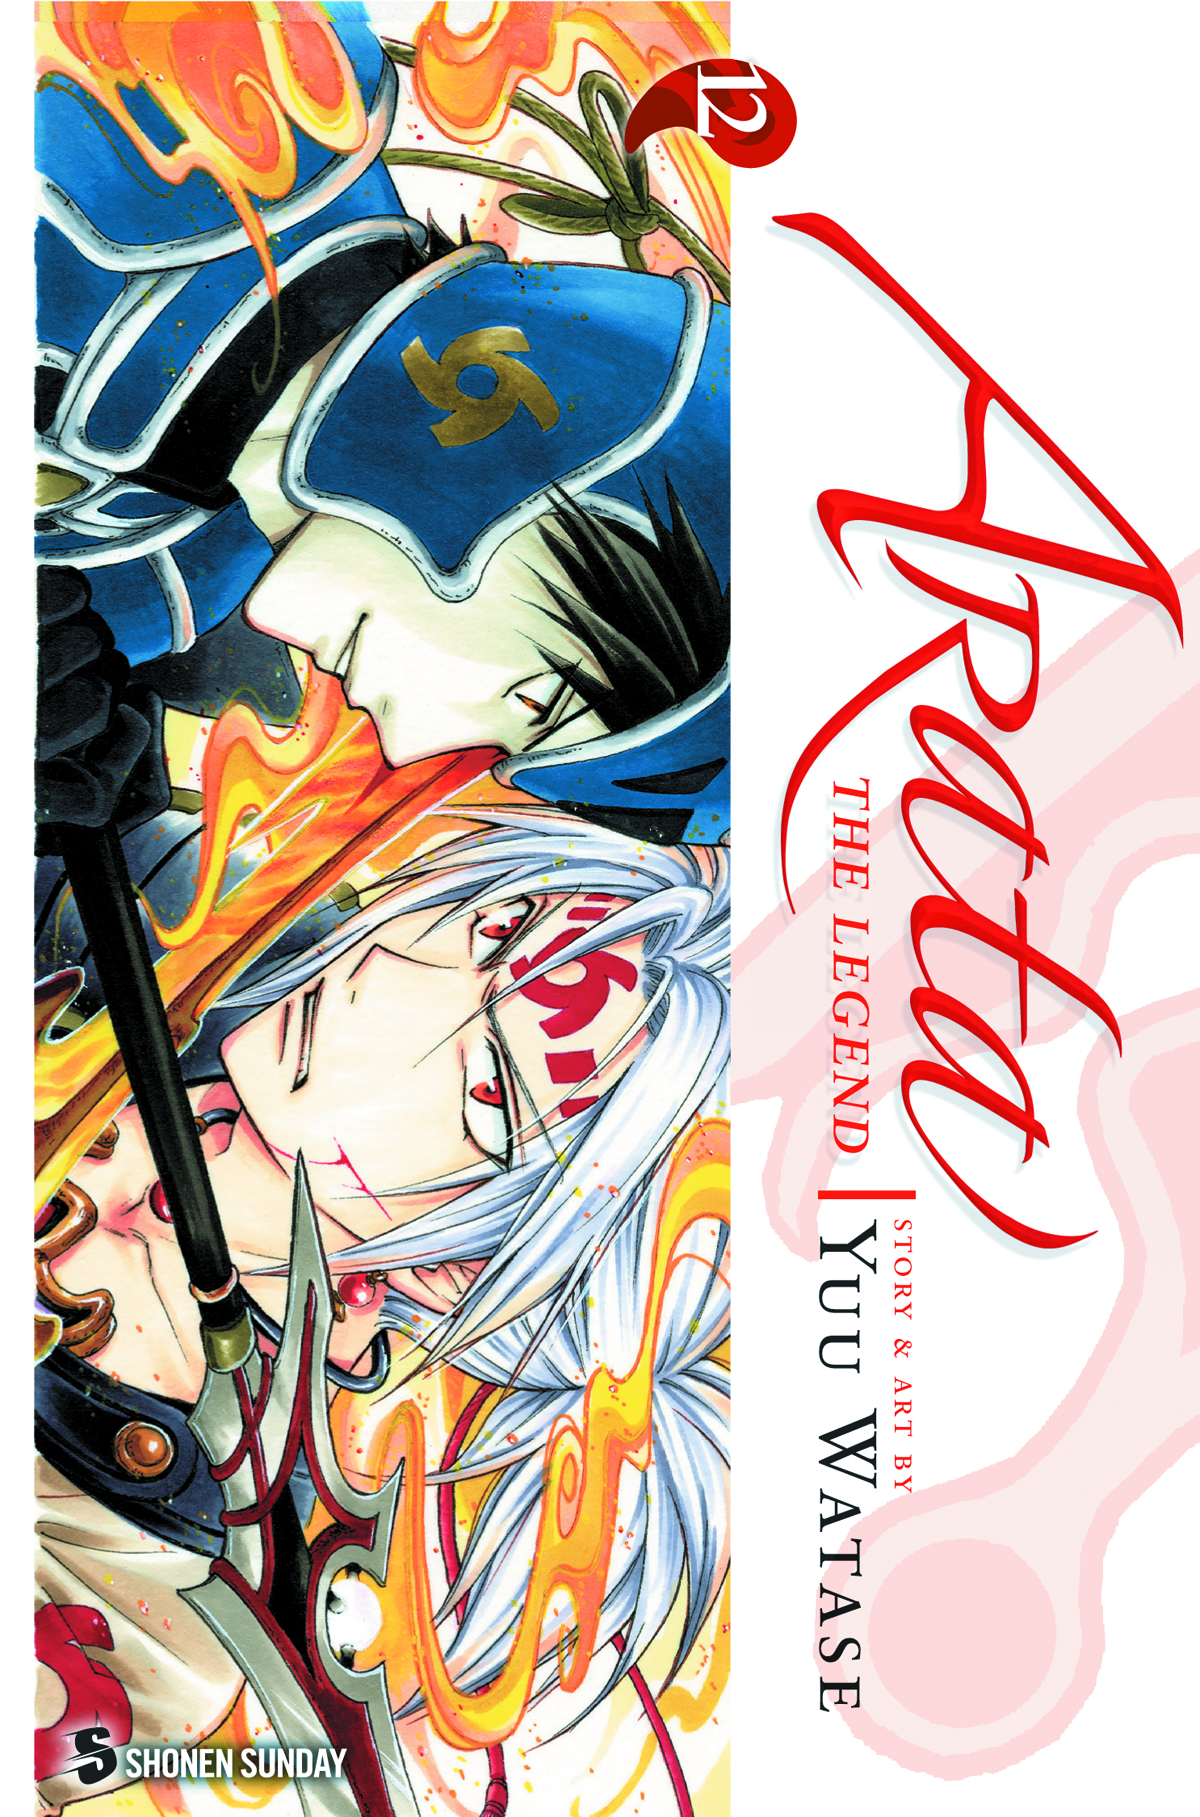 ARATA THE LEGEND GN VOL 12